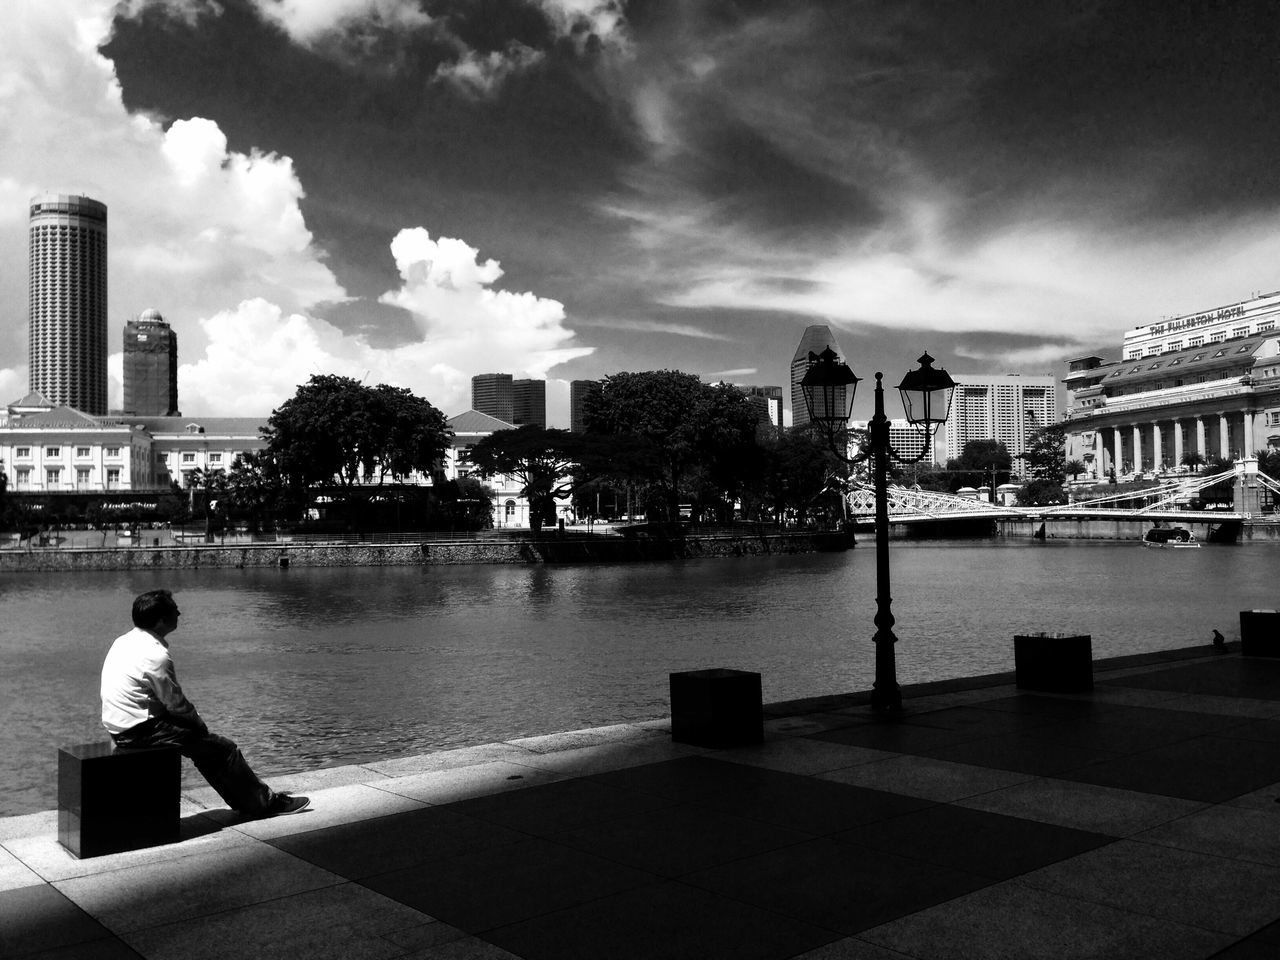 Full Length Of Man Sitting By River Against Sky In City